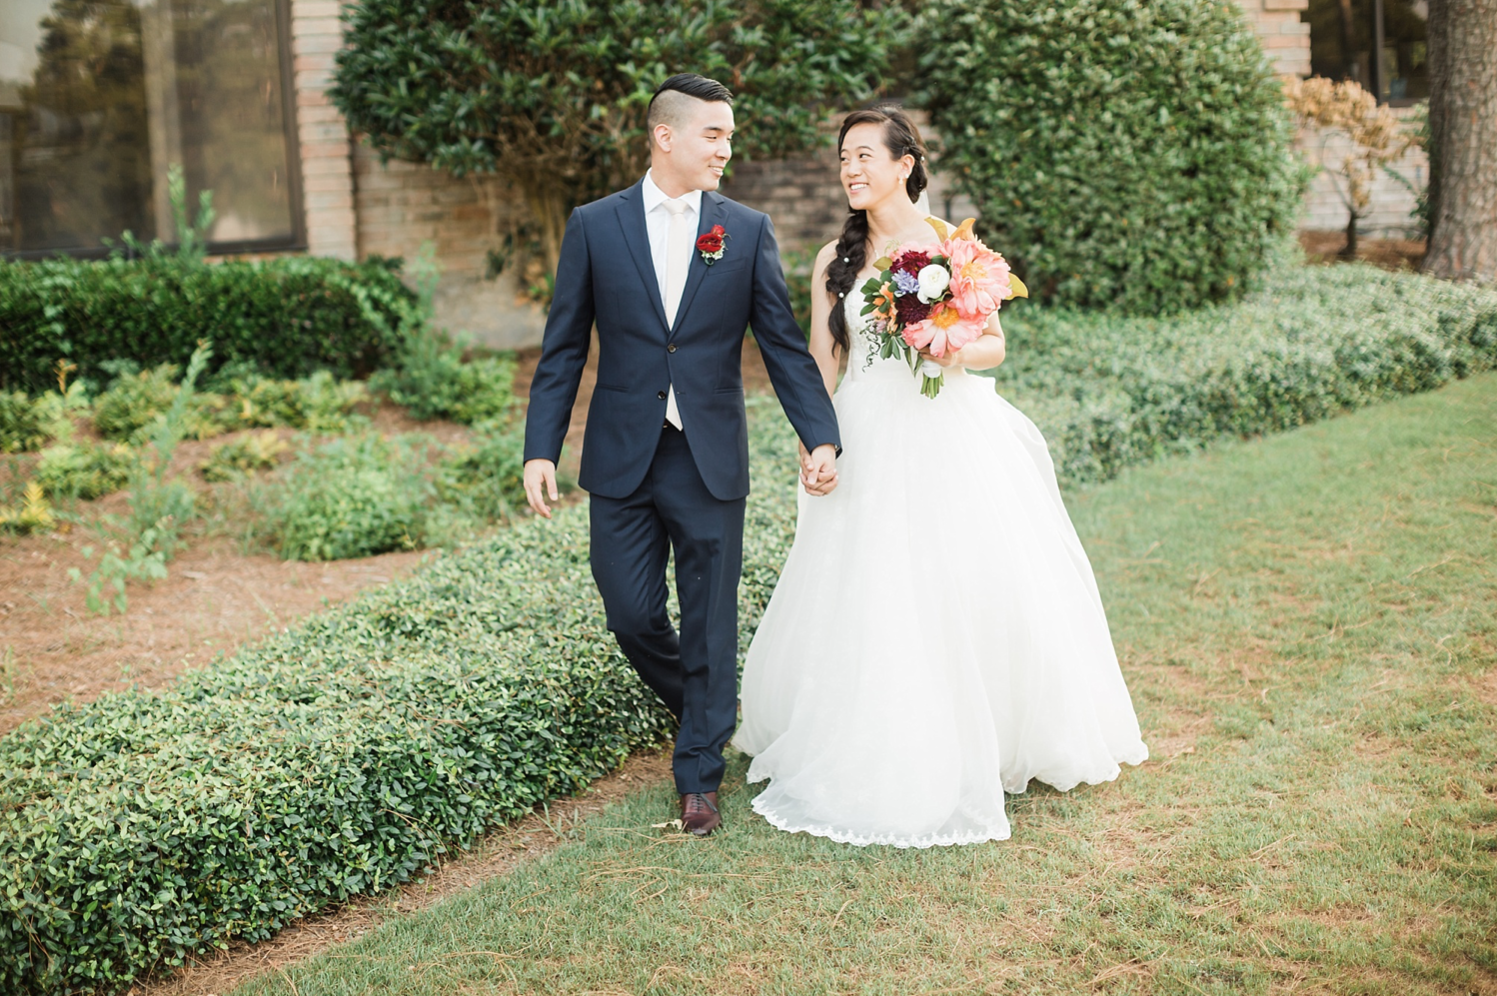 A wedding couple is walking in the garden of the Northgate Country Club.